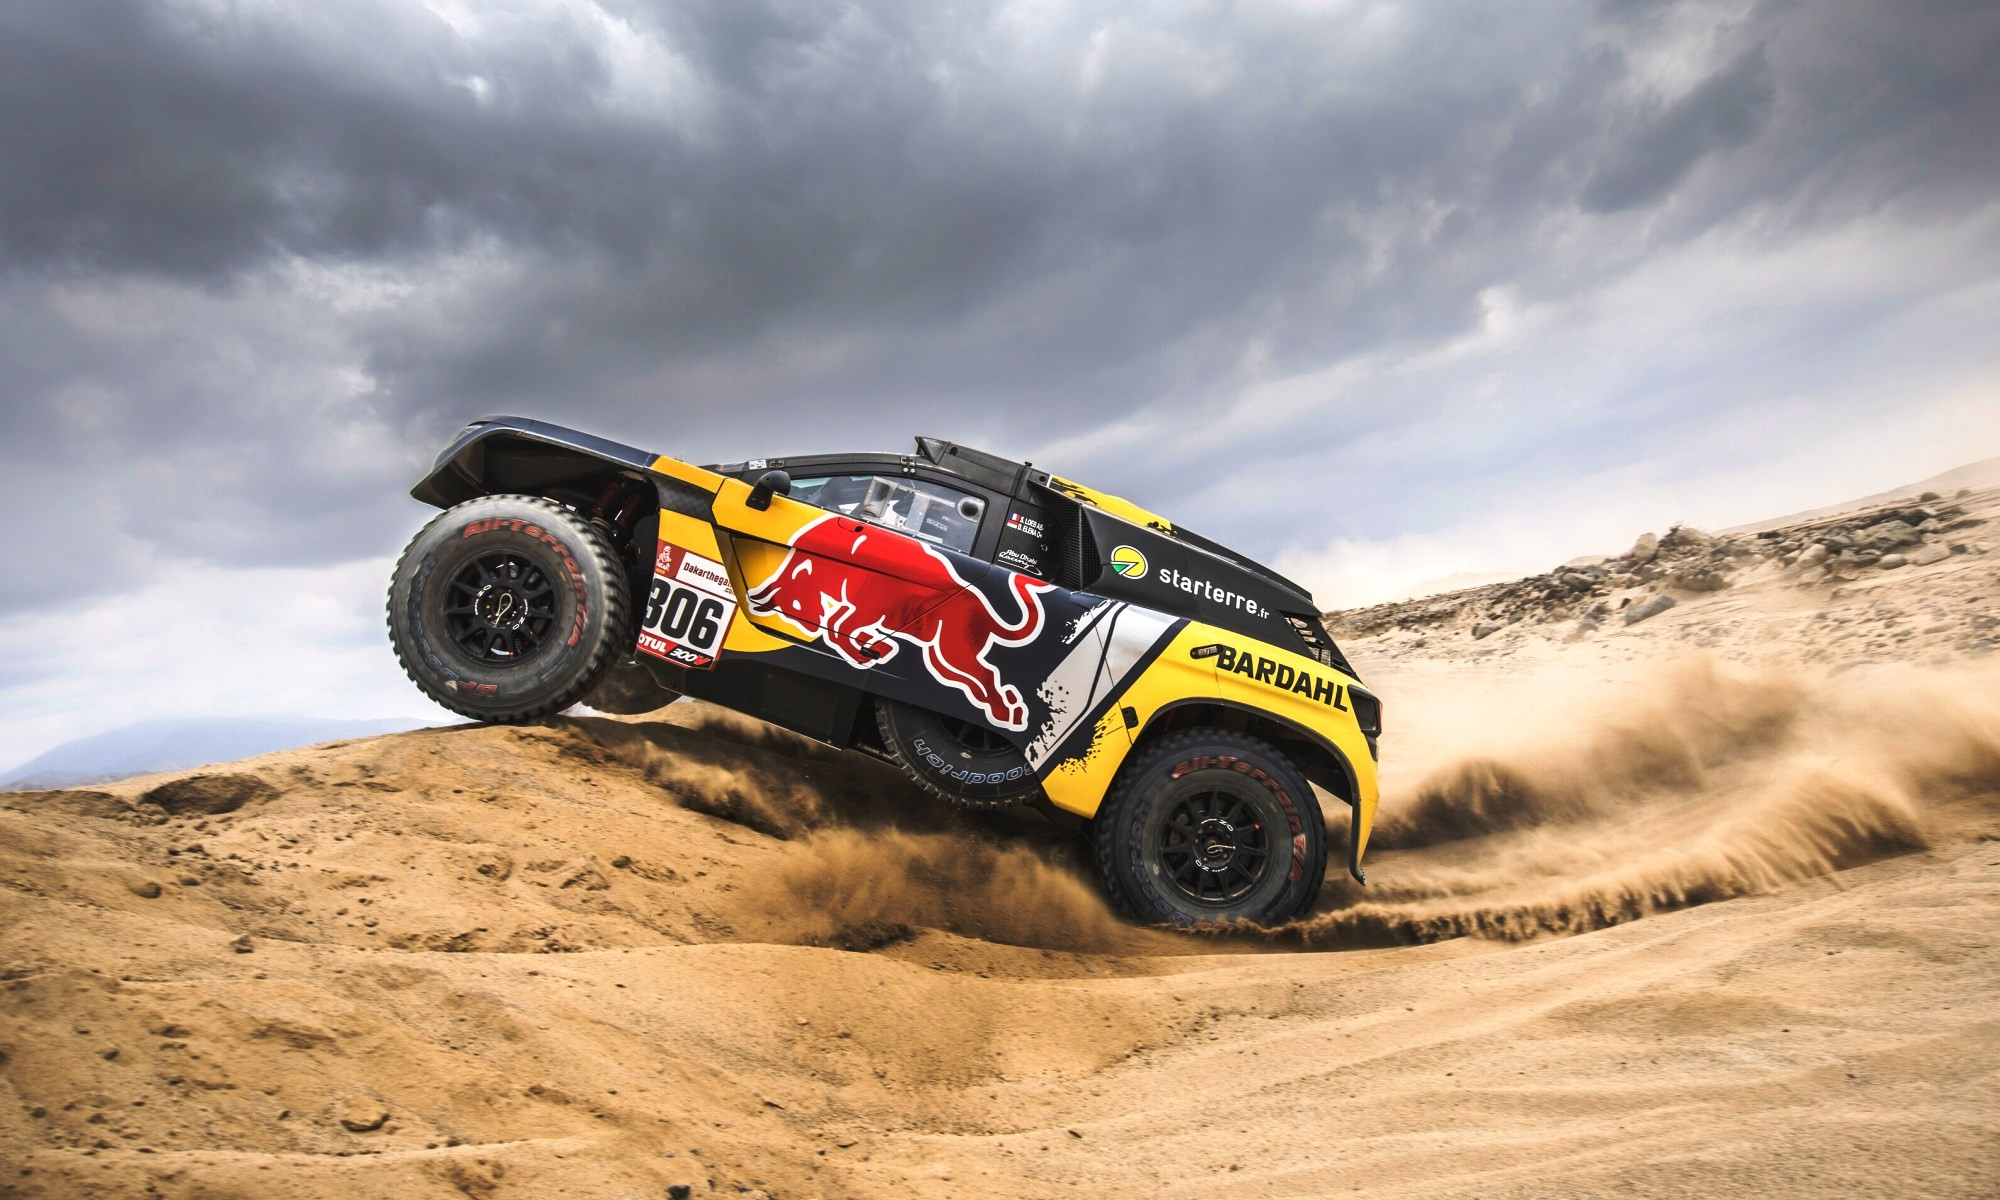 2019 Dakar Rally Stage 2